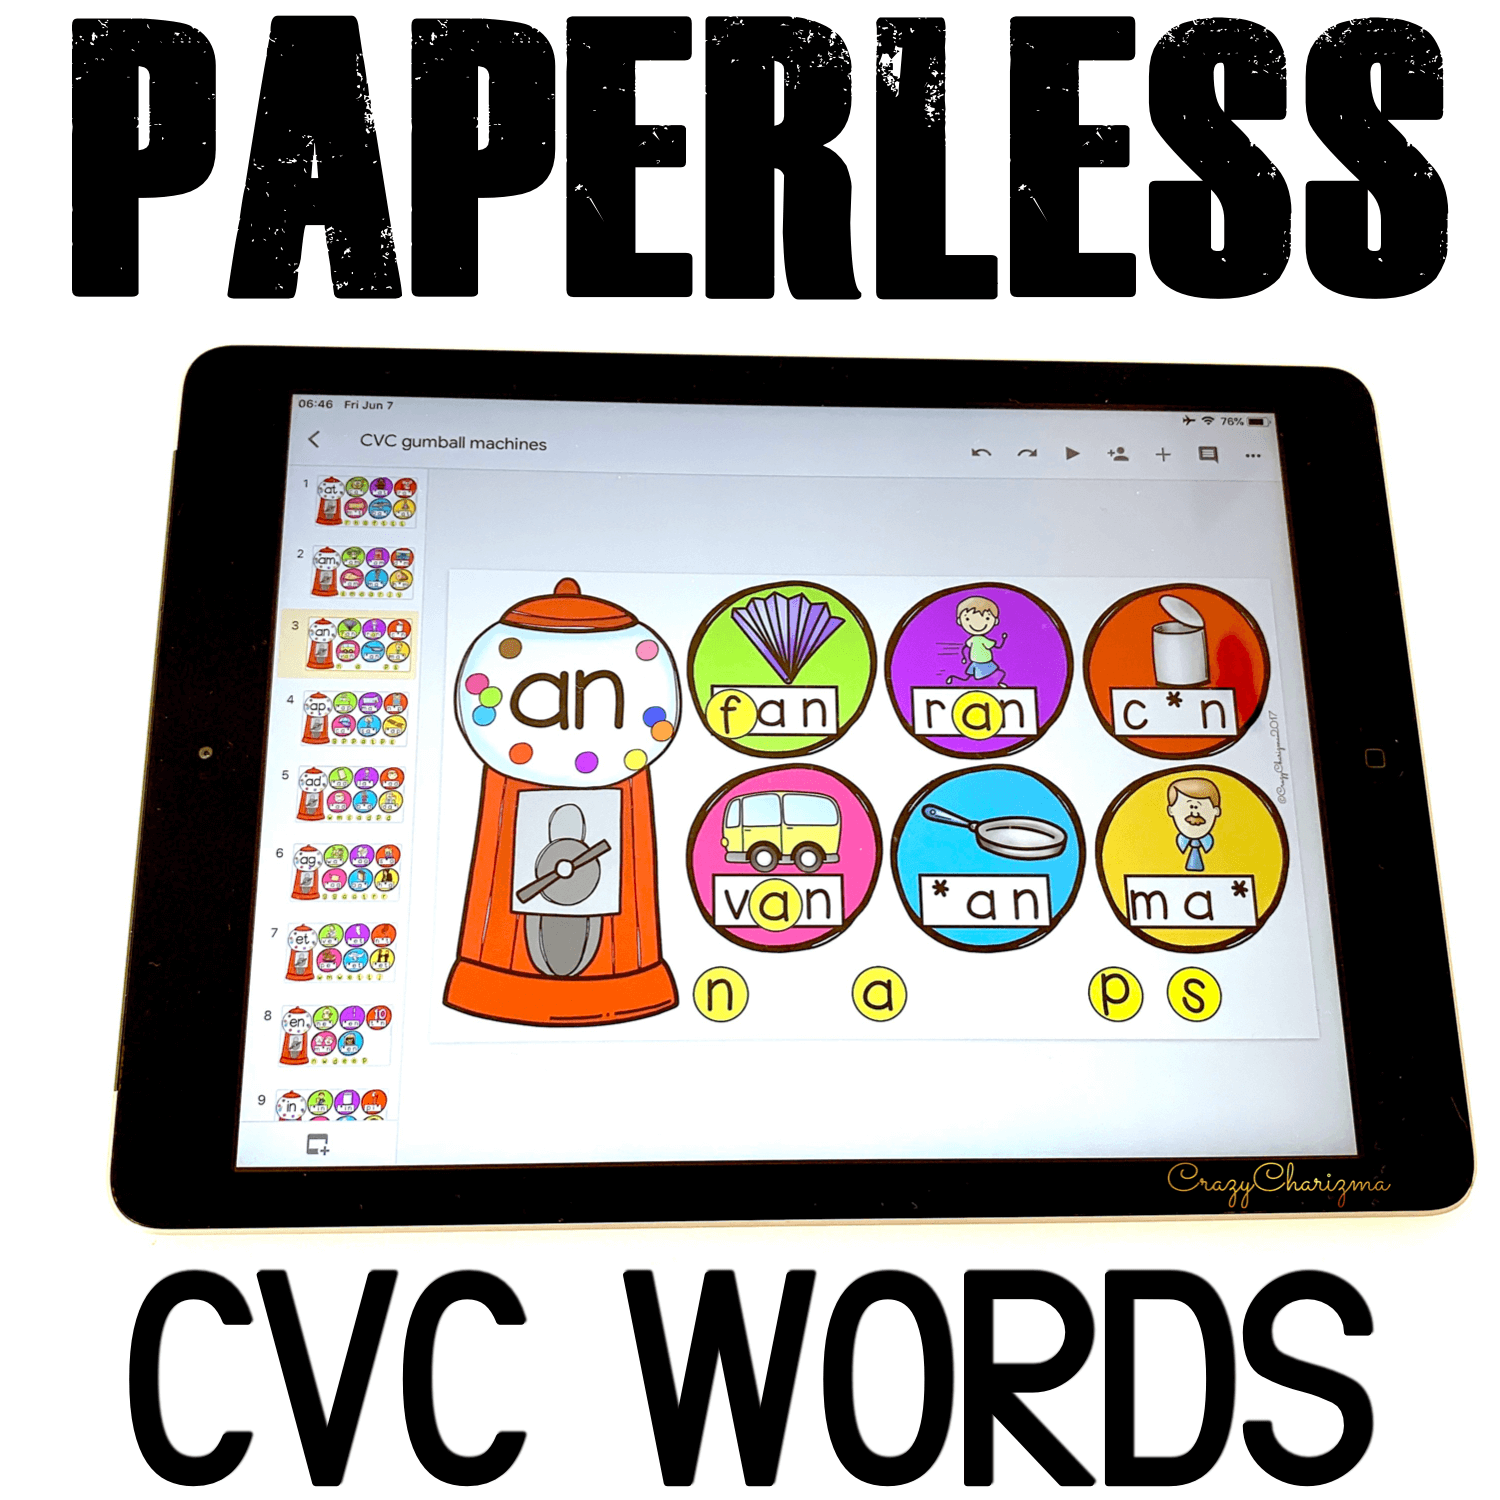 Google Classroom Activities for Kindergarten | CVC Words Games: Practice beginning, middle and ending sounds with CVC words activities. Check out digital word work games for your kids. Perfect for phonics centers, literacy centers, whole group, small group, and homework.